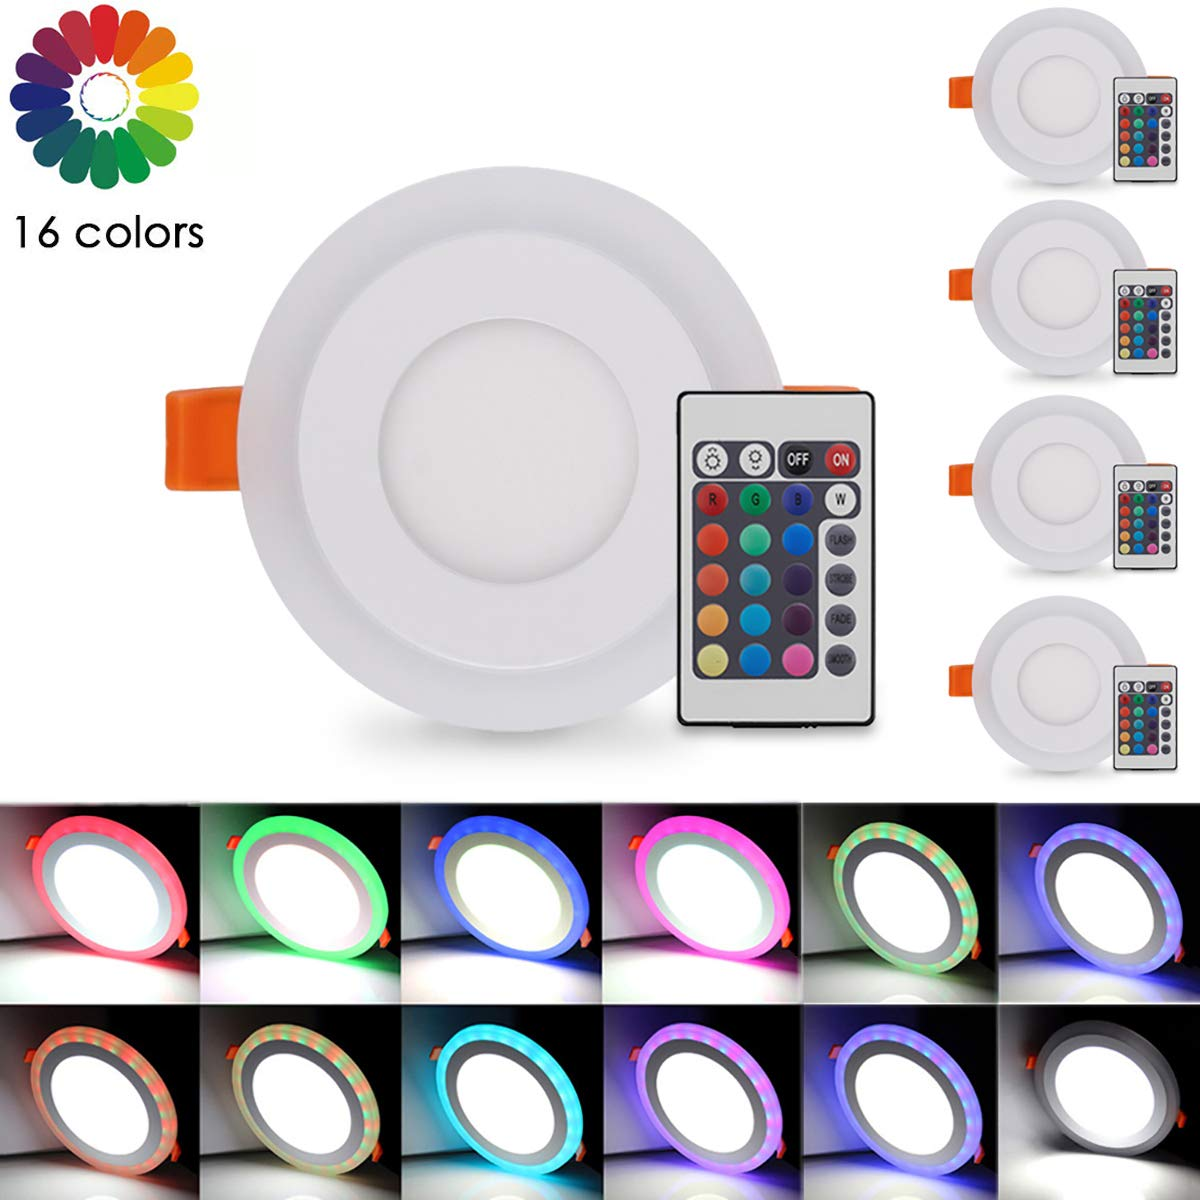 Pocketman Ultra-Thin RGB LED Panel Recessed Ceiling Light,9w 800 Lumens 5.7-inch Color Changing Round Ceiling Downlight with Remote Control & LED Driver,5-Pack